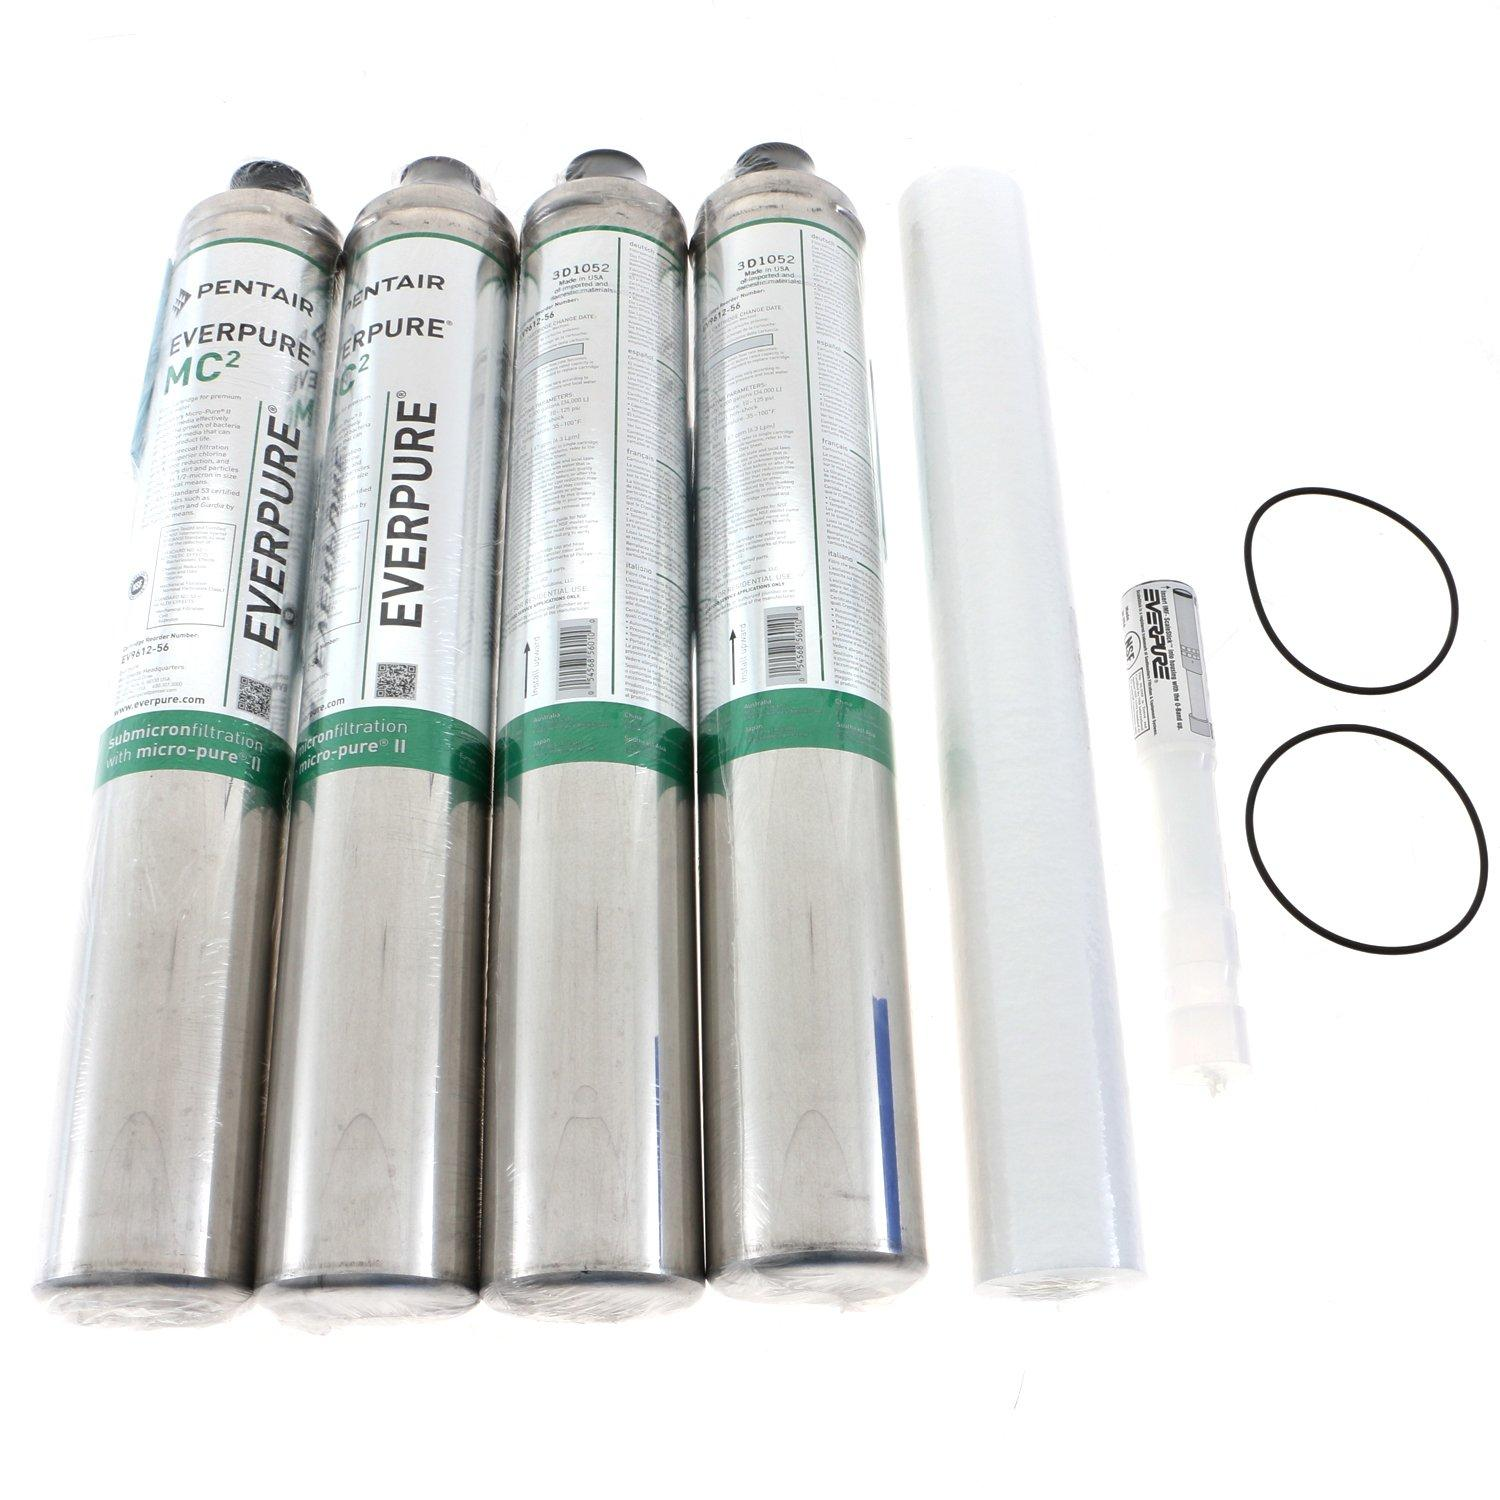 EVERPURE QUAD MC2 FILTER KIT